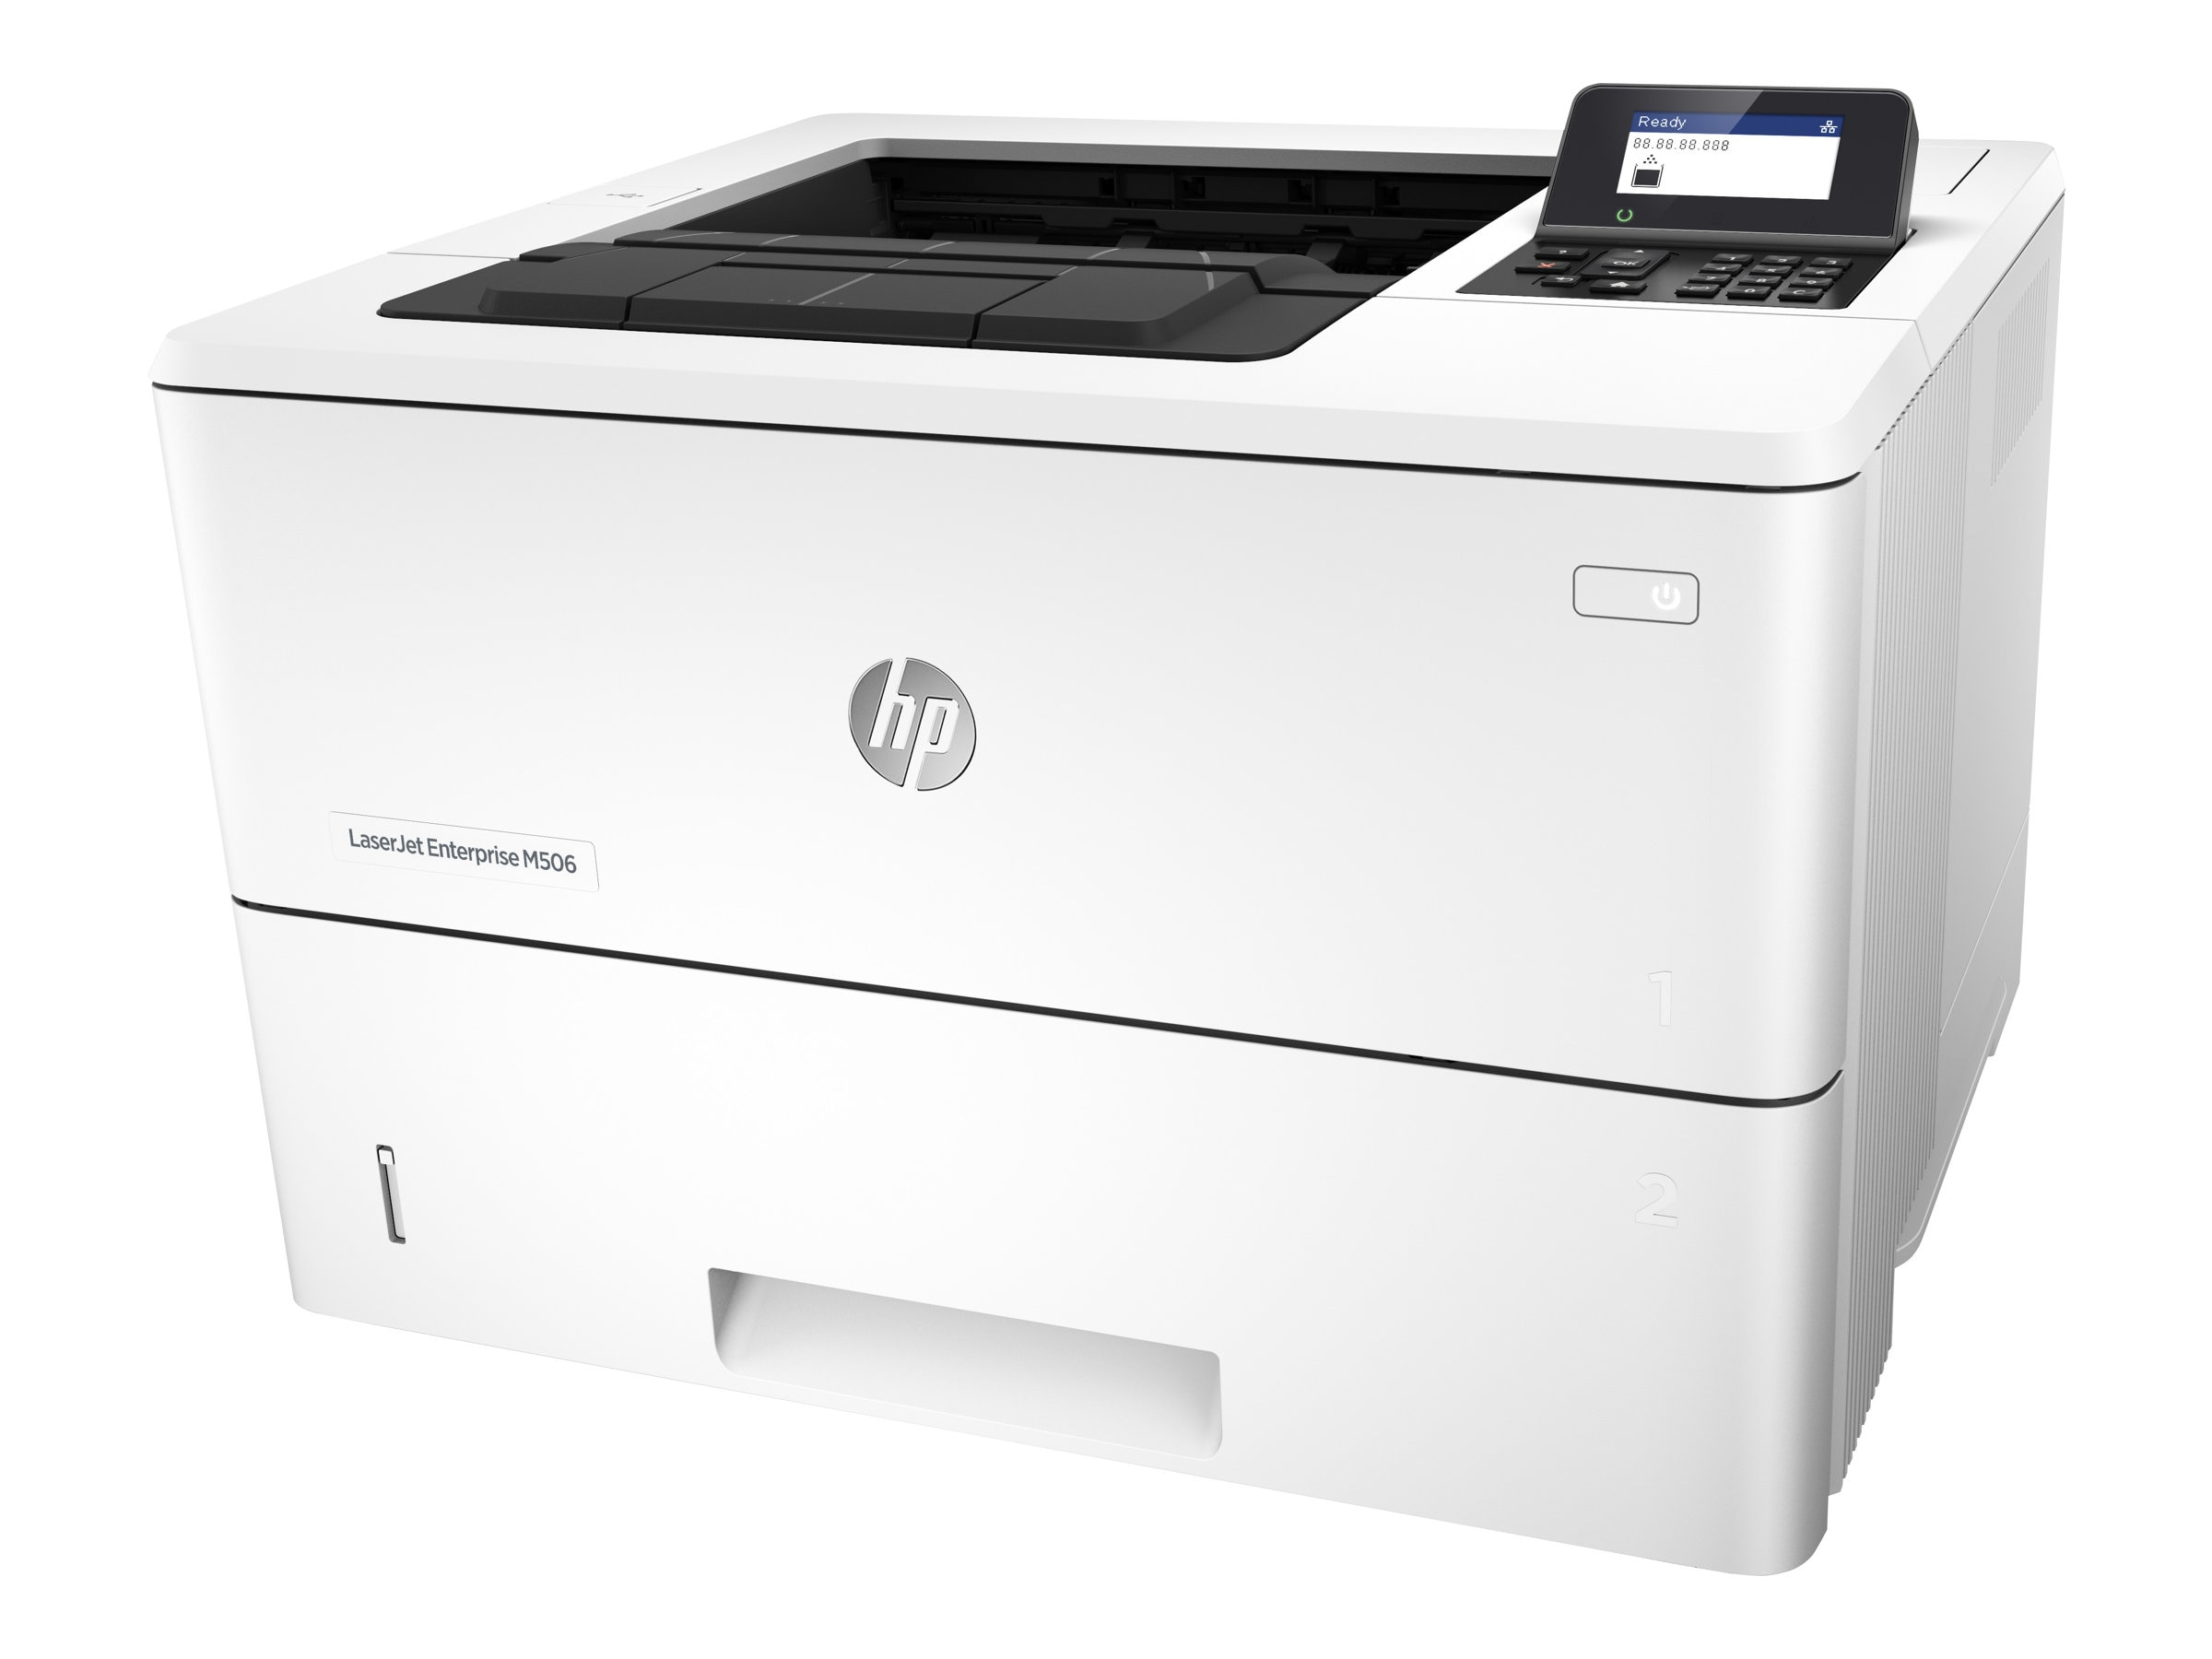 HP LaserJet Enterprise M506dn Printer, F2A69A#201, 30770495, Printers - Laser & LED (monochrome)